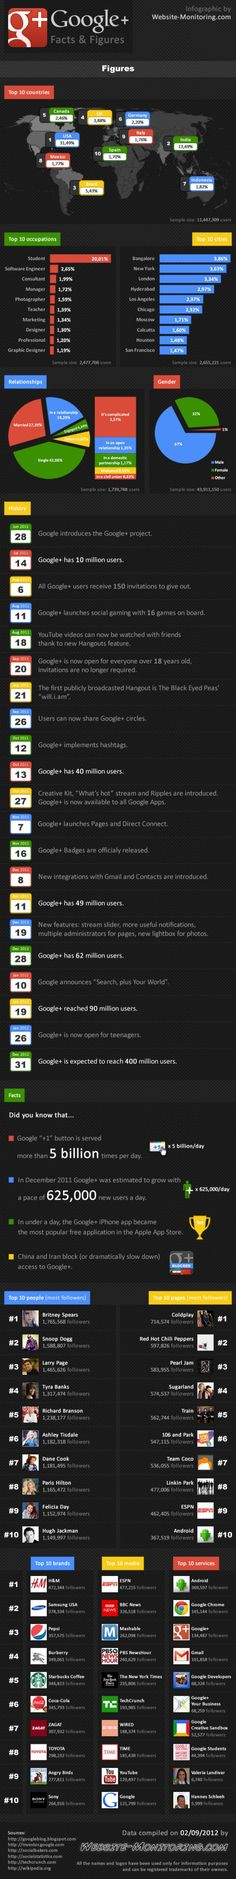 Google+ Most Popular With Male Users, Students [INFOGRAPHIC]